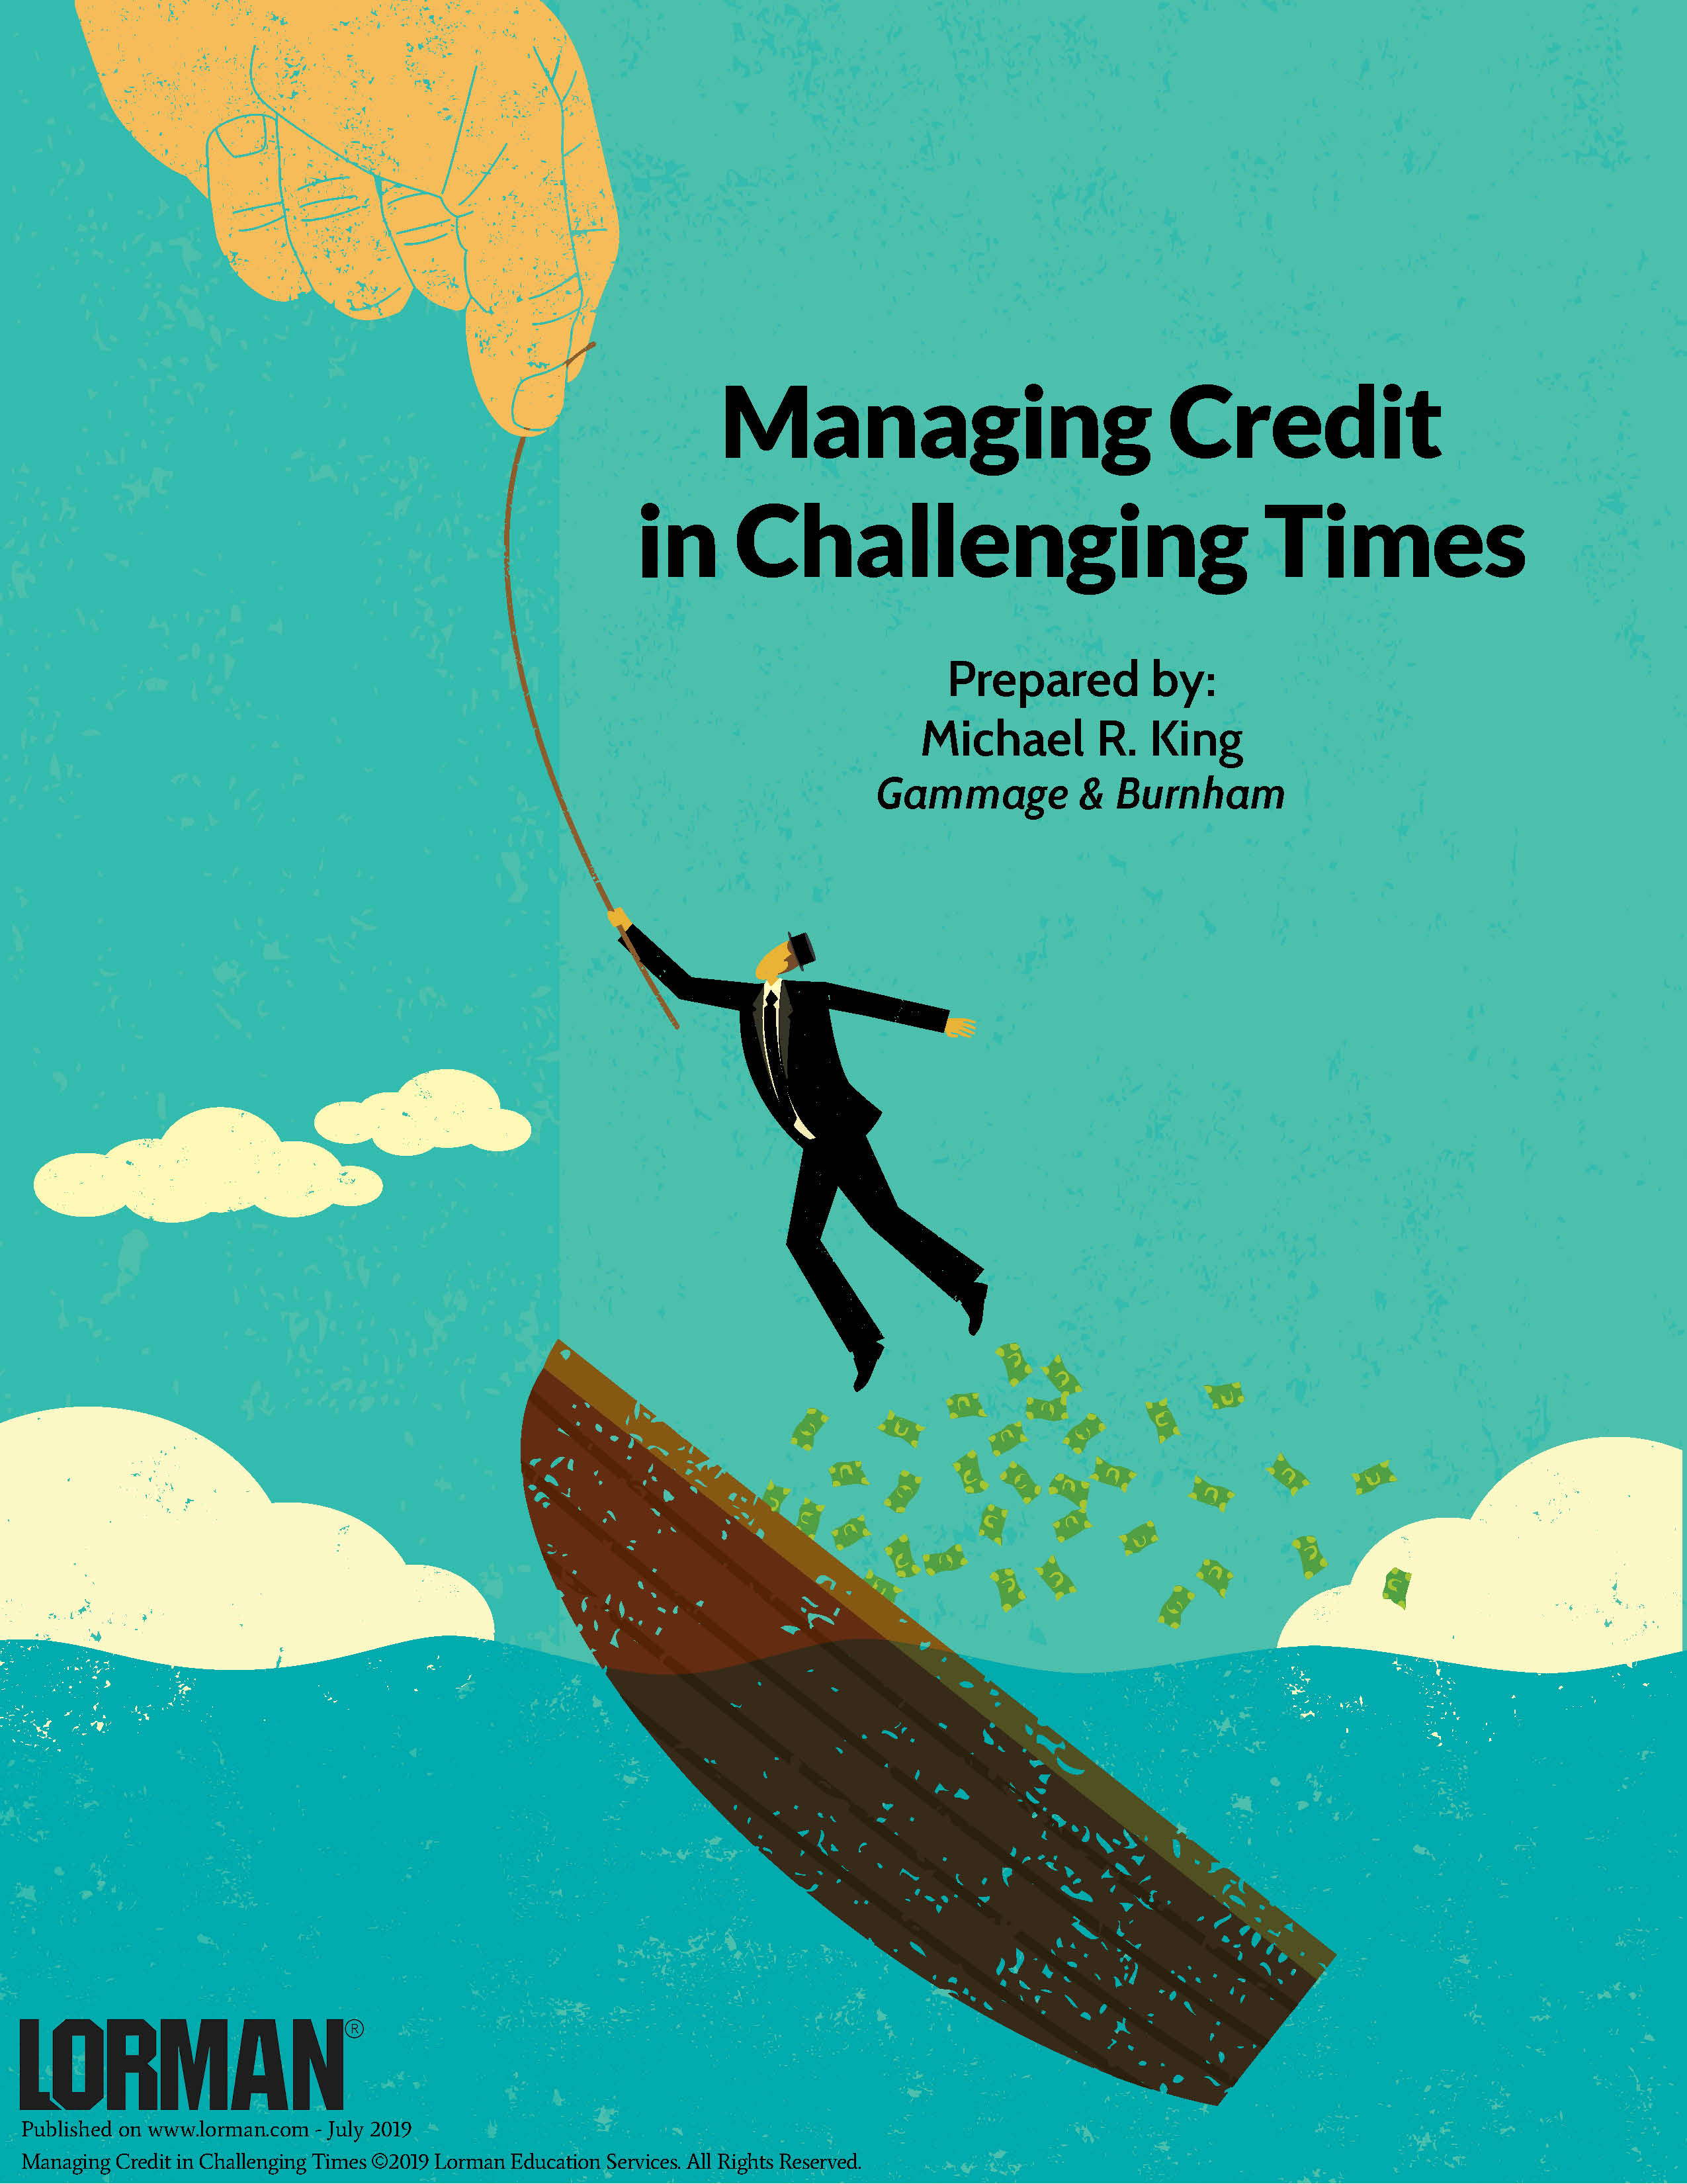 Managing Credit in Challenging Times